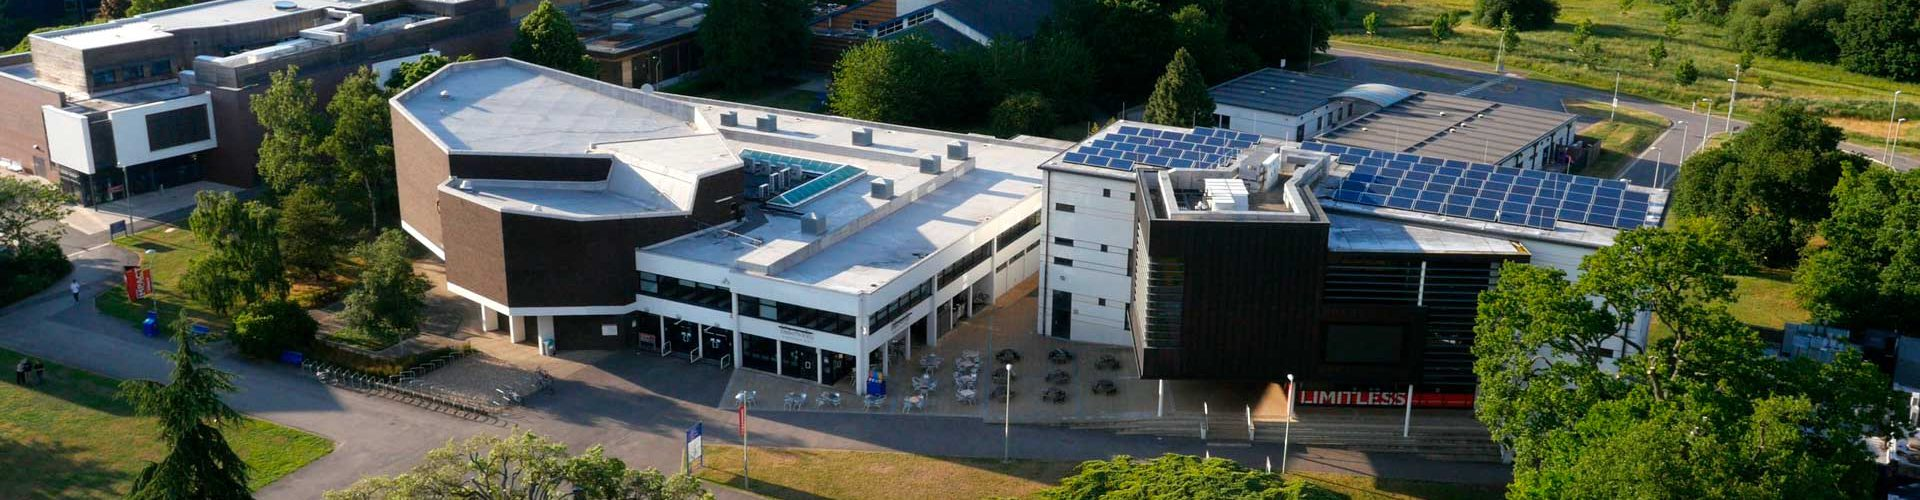 Palmer Building, Whiteknights Campus Aerial Drone Photograph